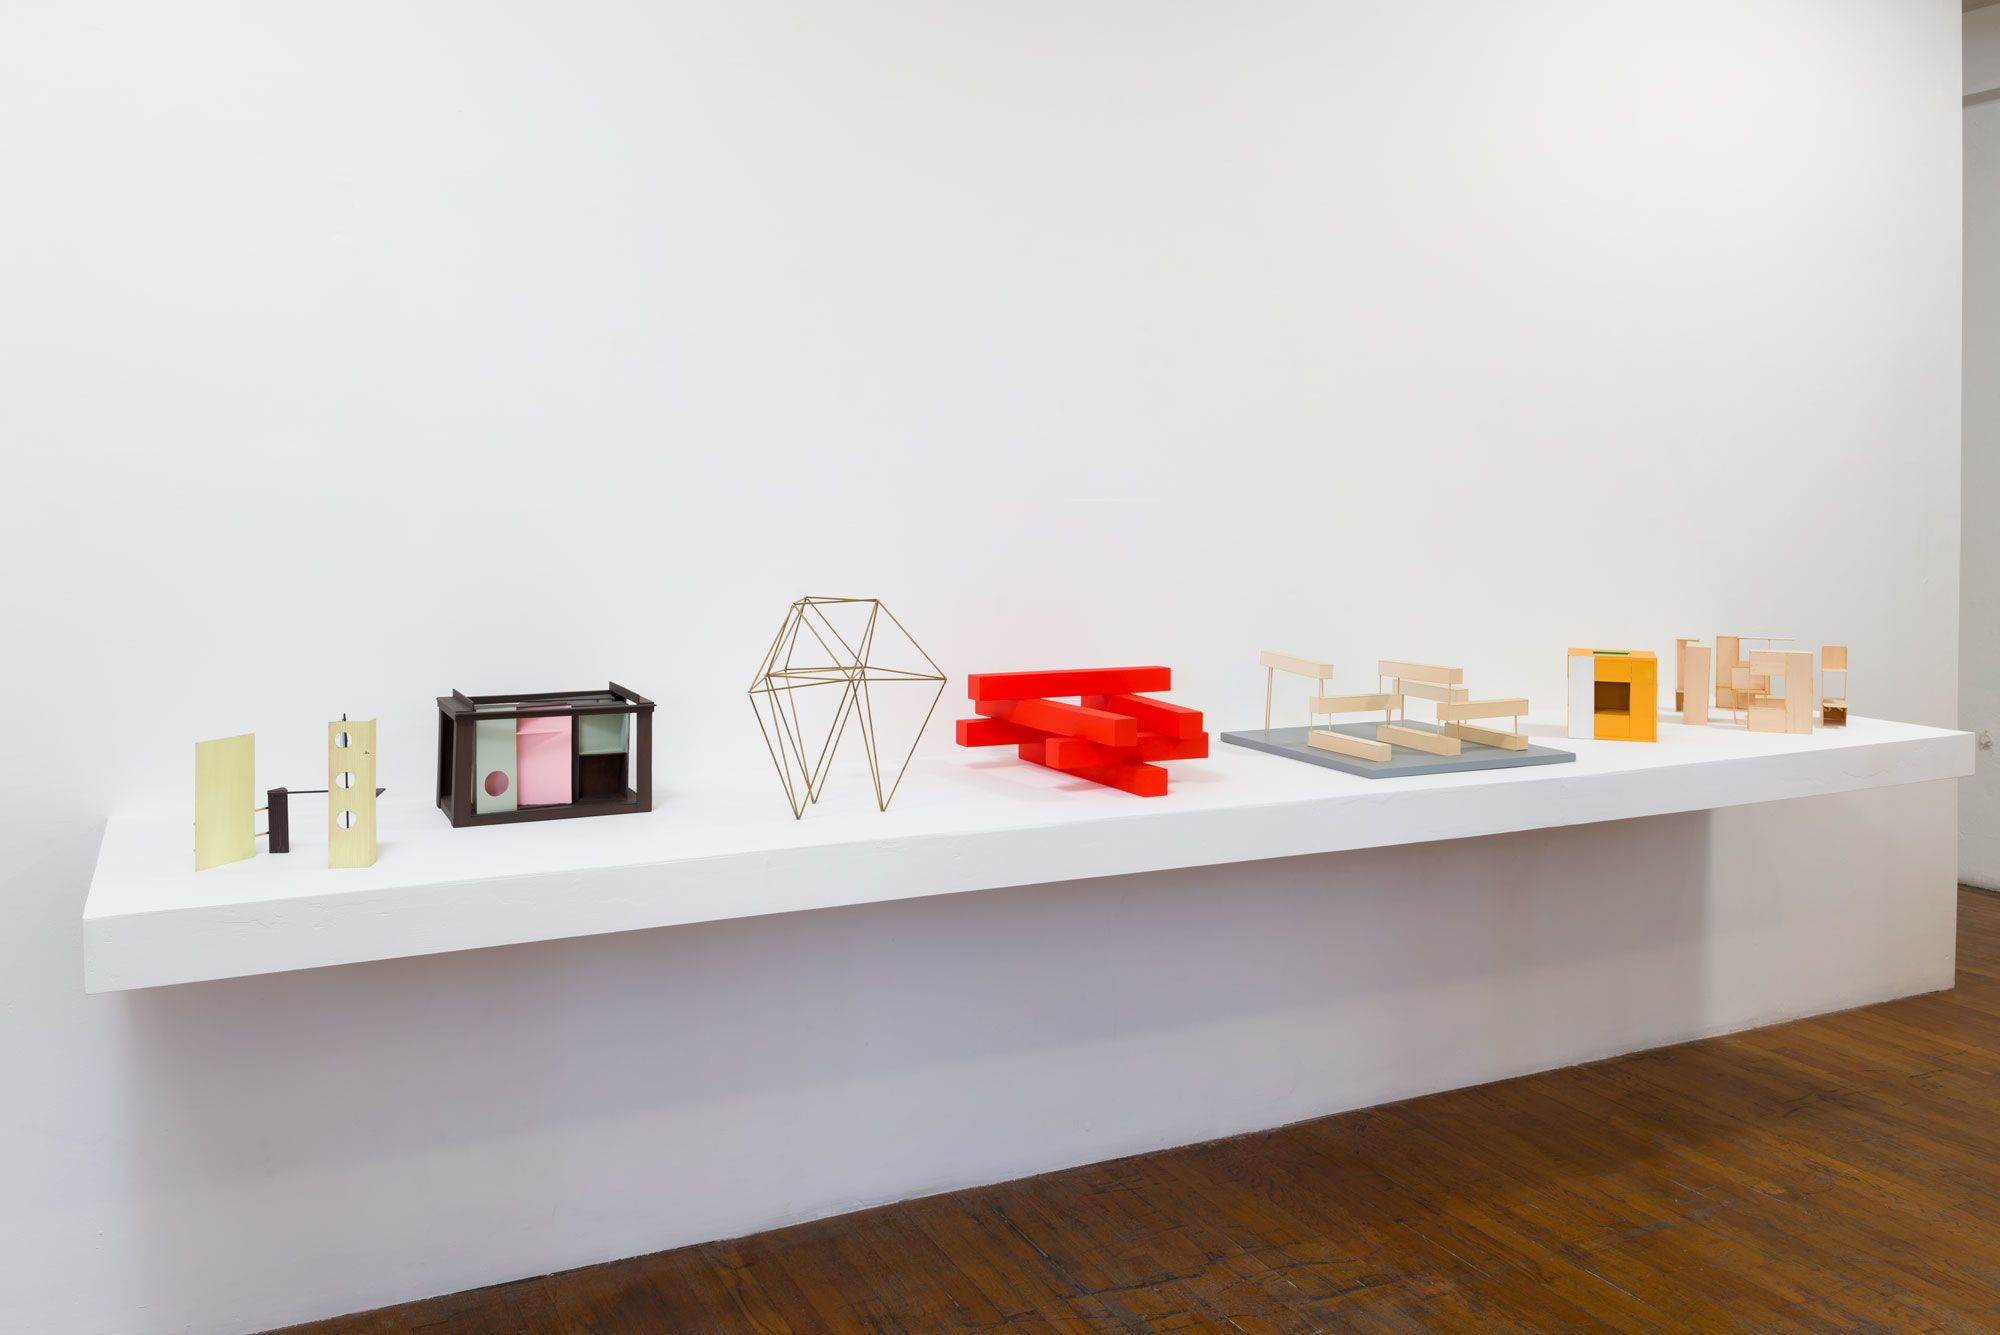 Alice Könitz, Installation view